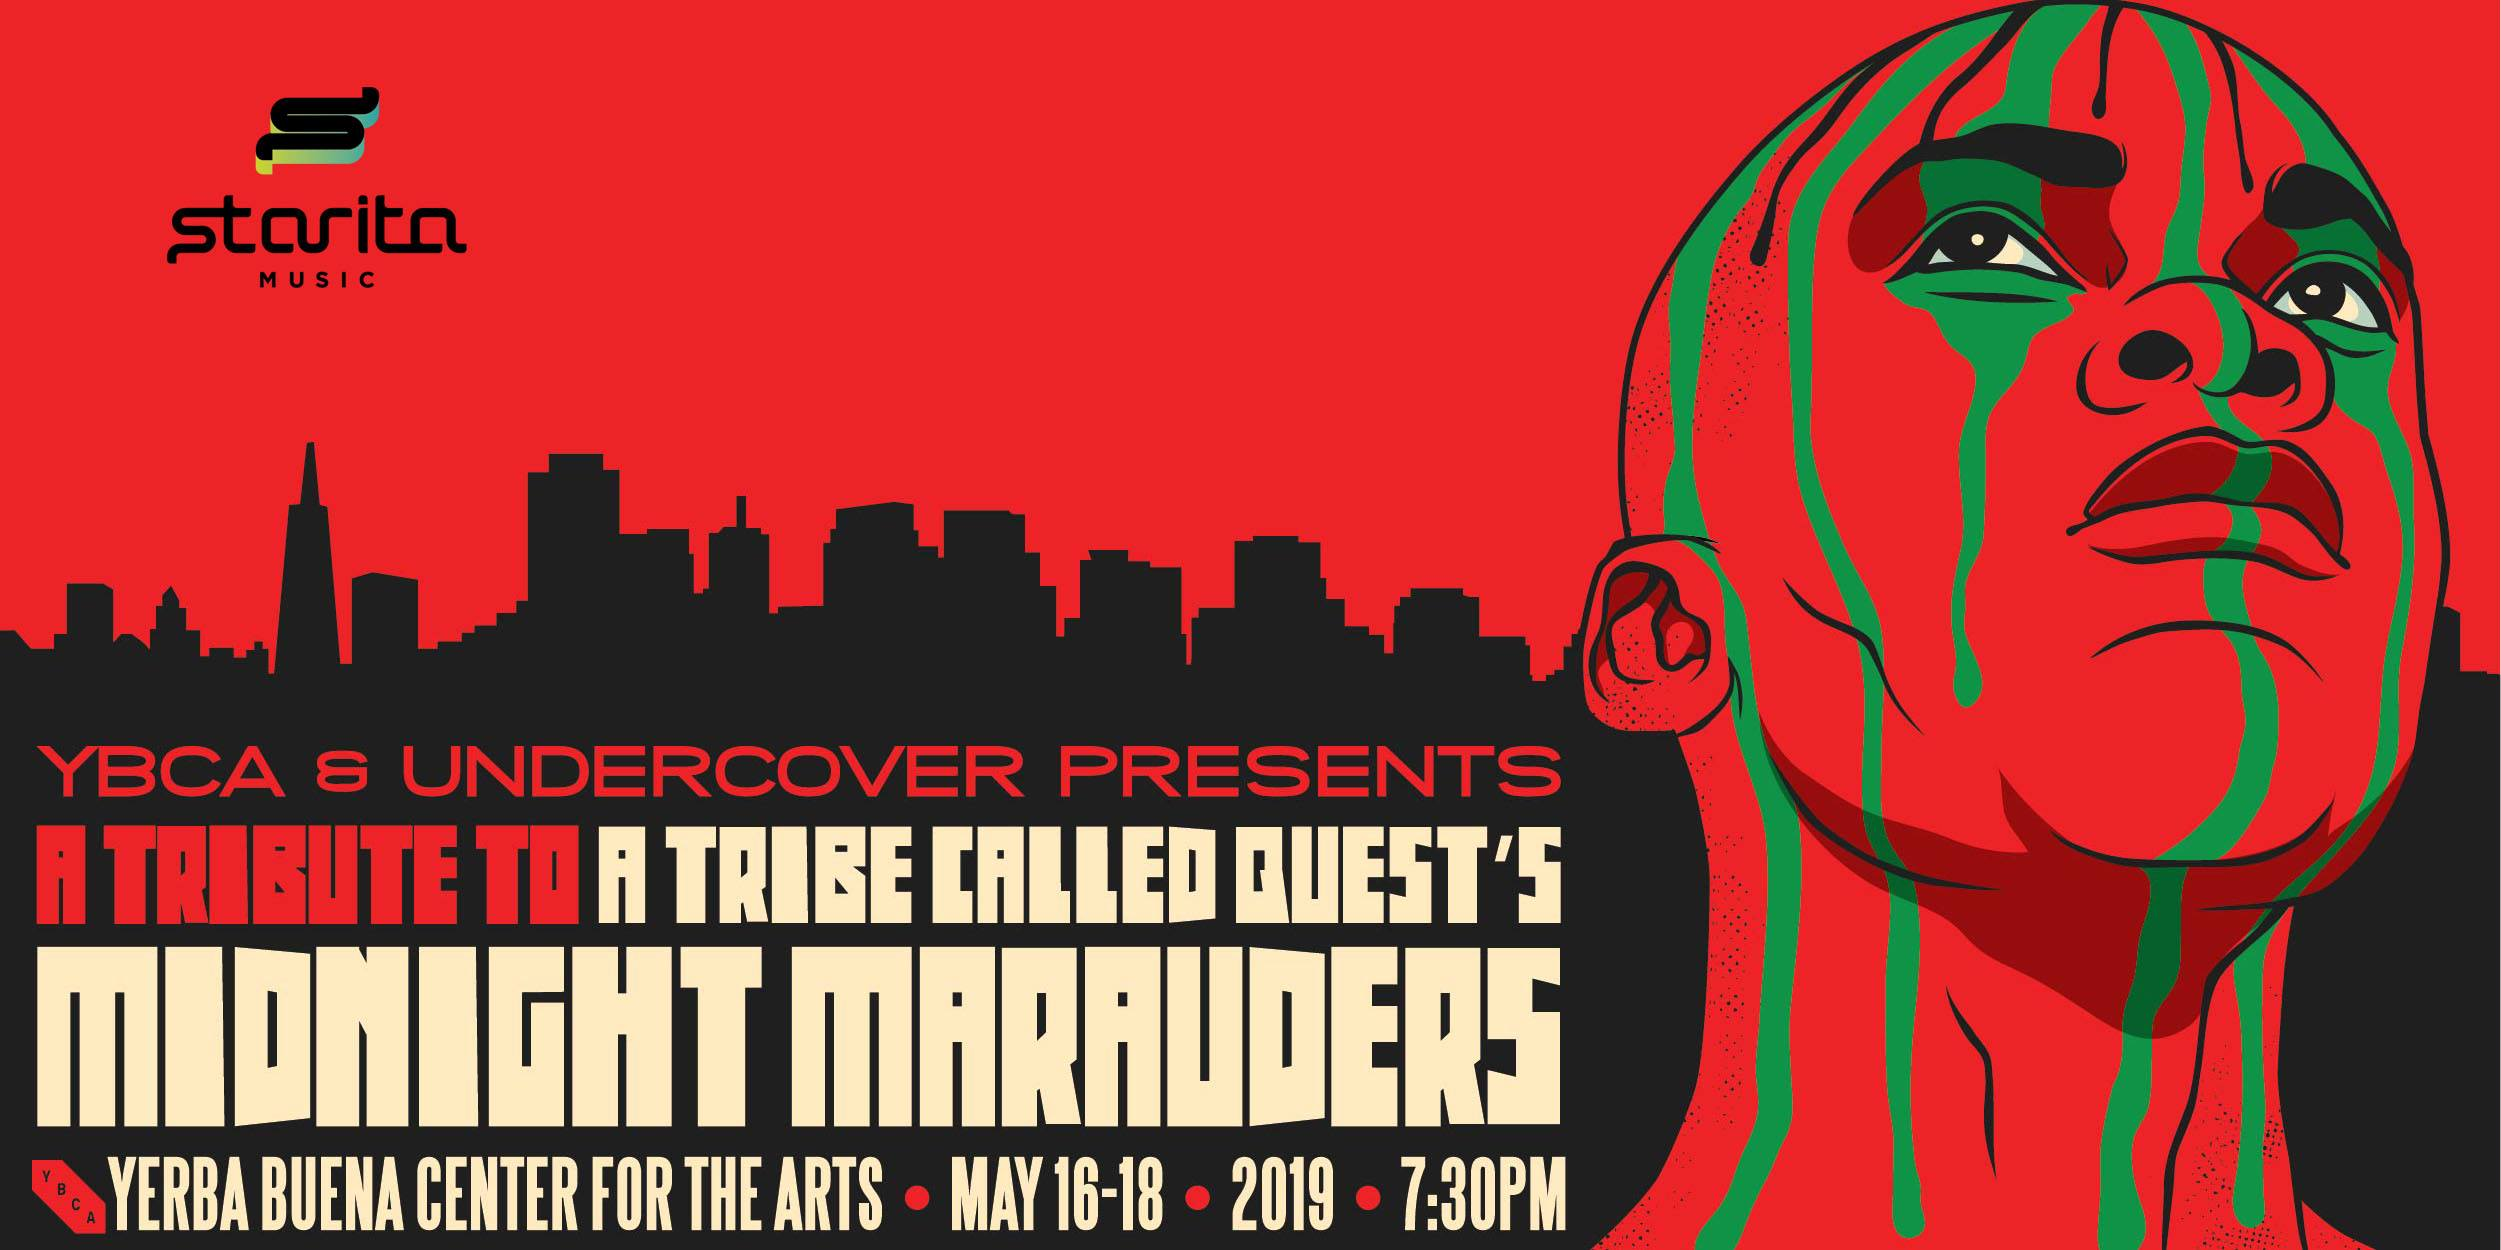 Tribute to A Tribe Called Quest's Midnight Marauders